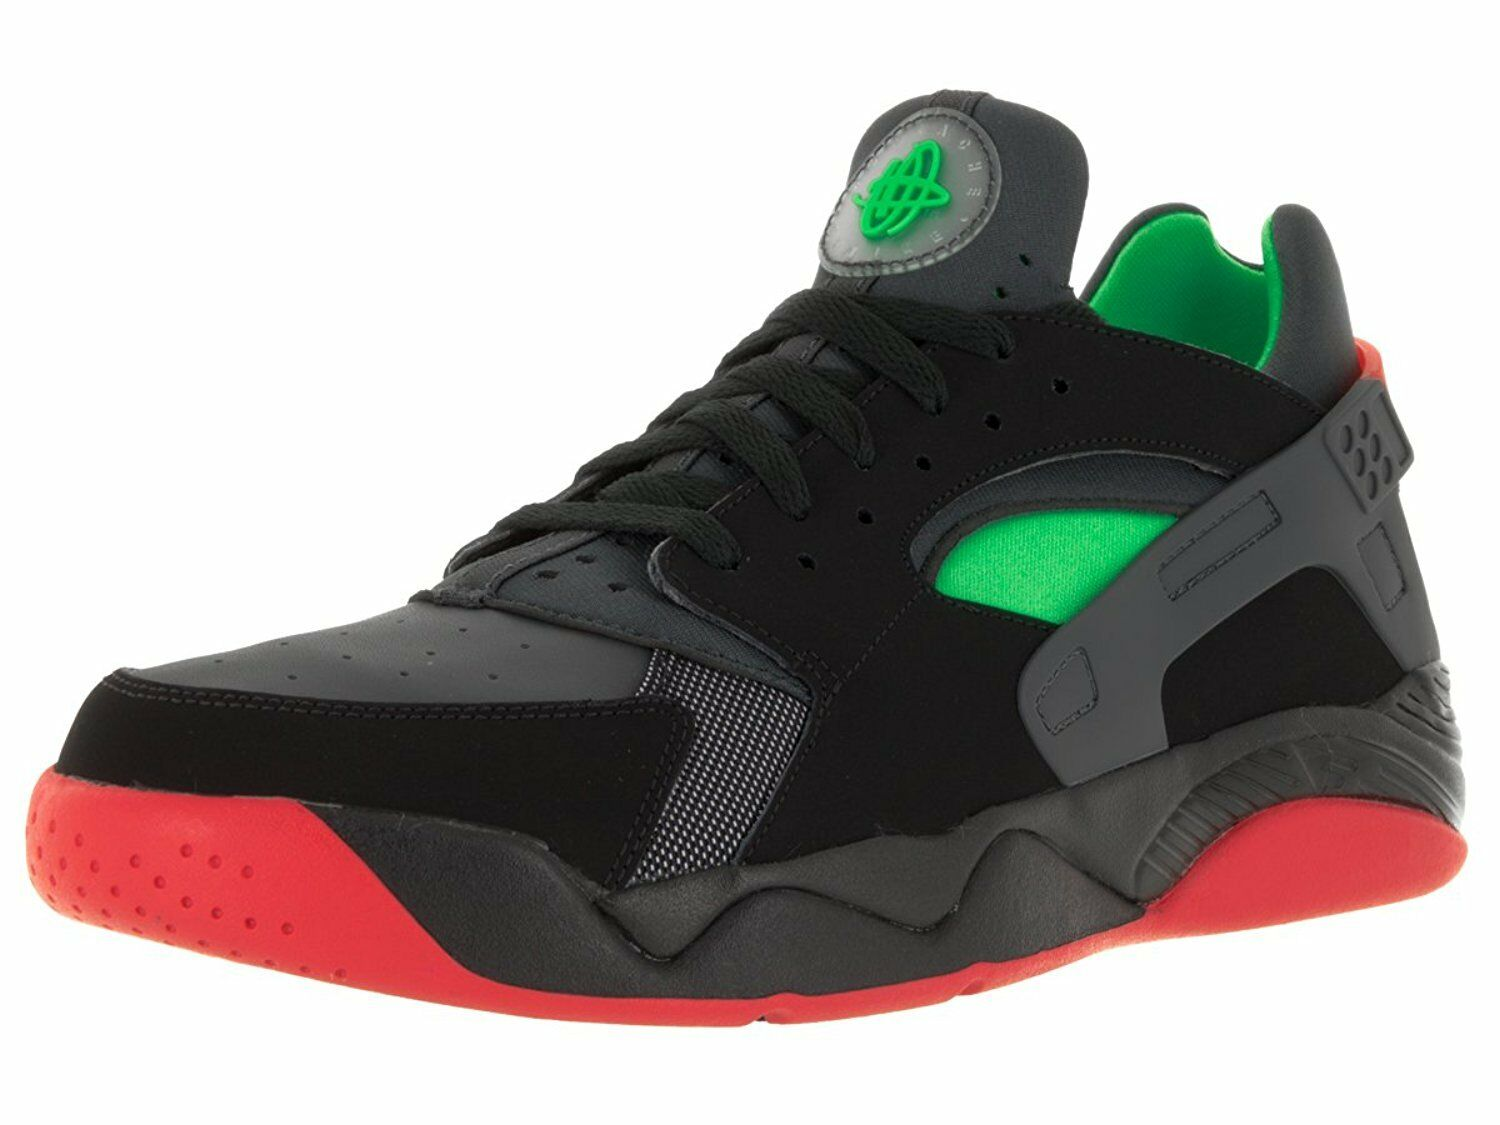 Nike Flight Huarache Low Men's Comfortable Special limited time